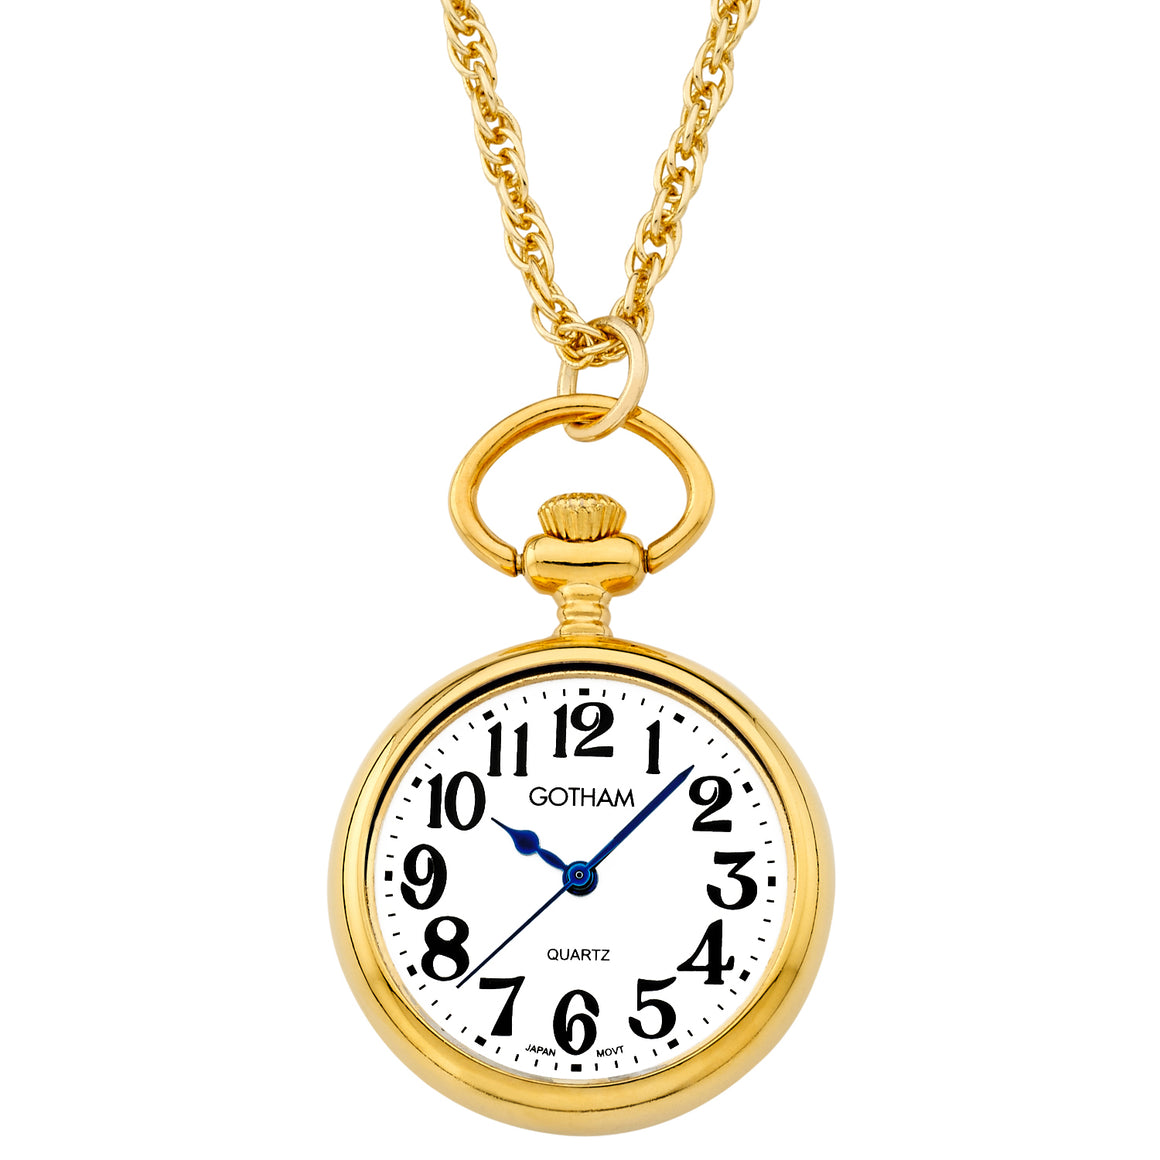 Gotham Women's Gold-Tone Open Face Pendant Watch With Chain # GWC14135GA - Gotham Watch